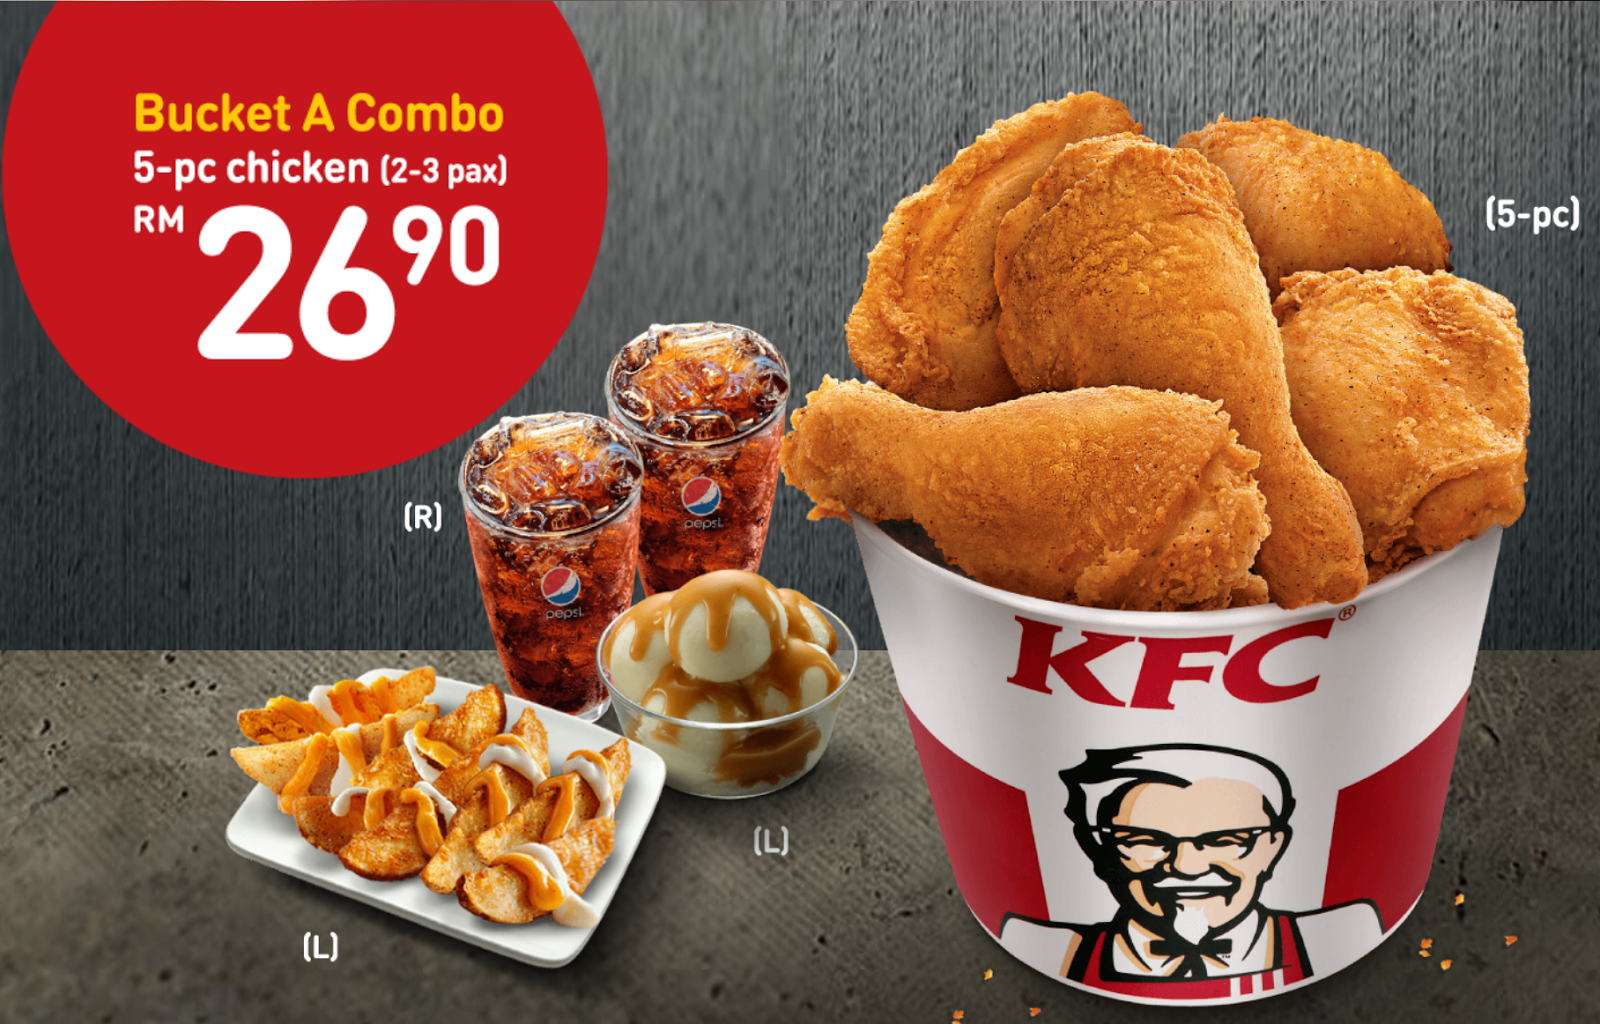 kfc bucket berbaloi rm2690 value combo set with 5pc